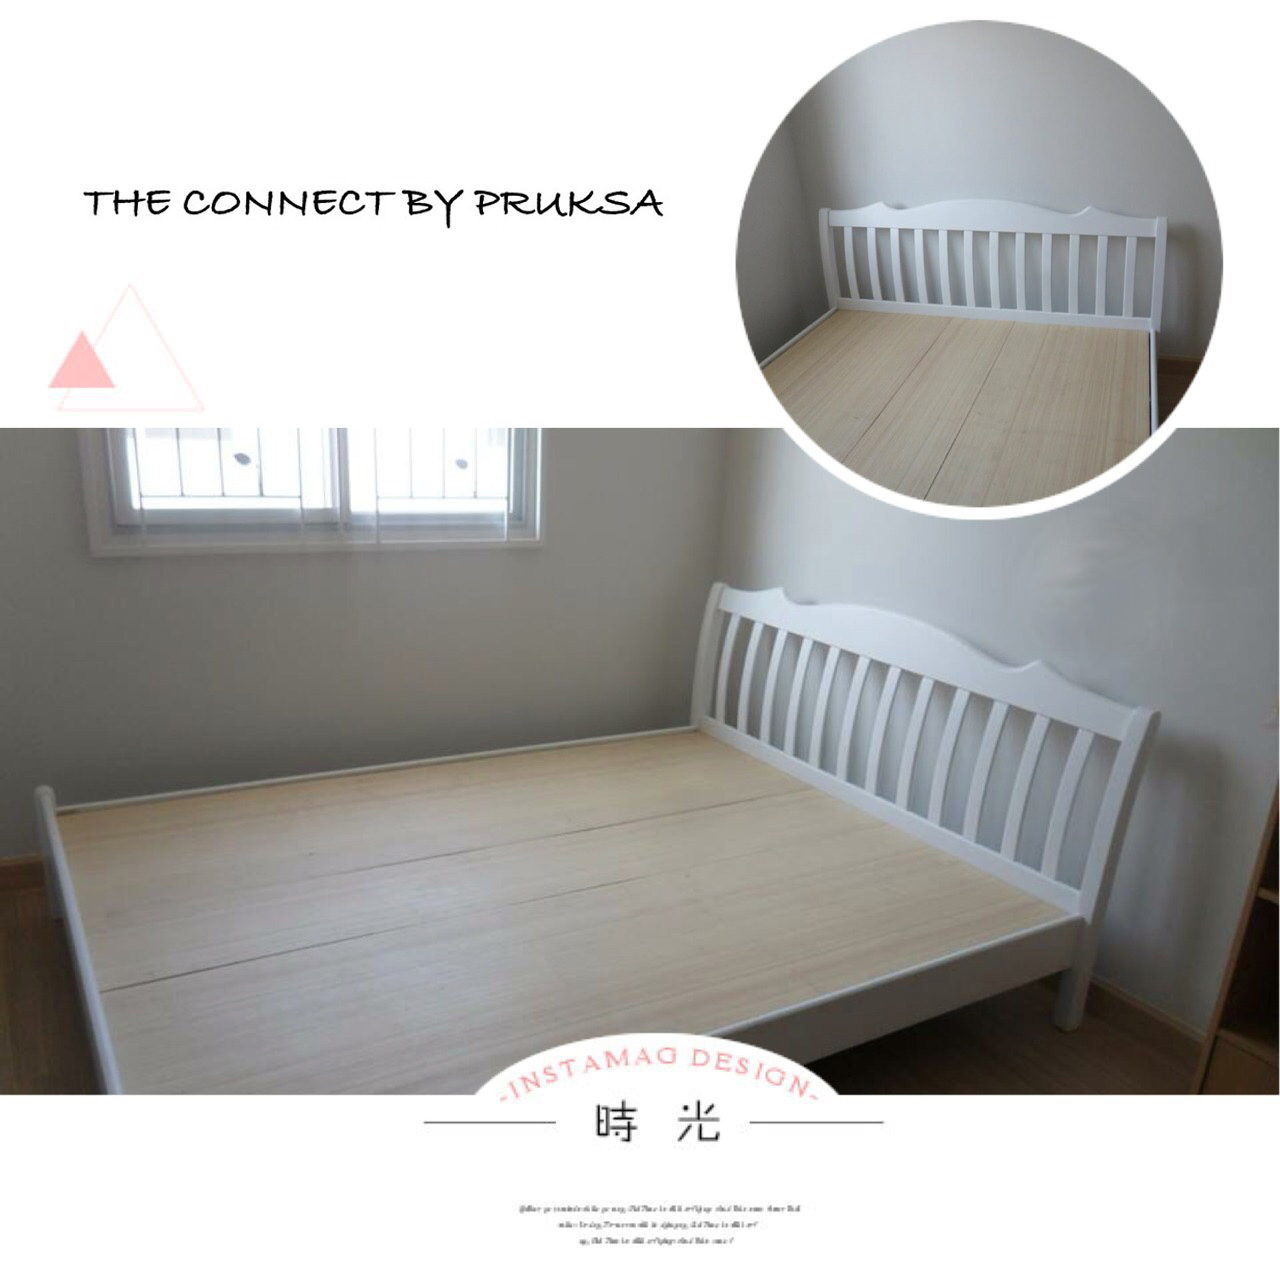 THE CONNECT BY PRUKSA (MODEL : MW-STYLE)